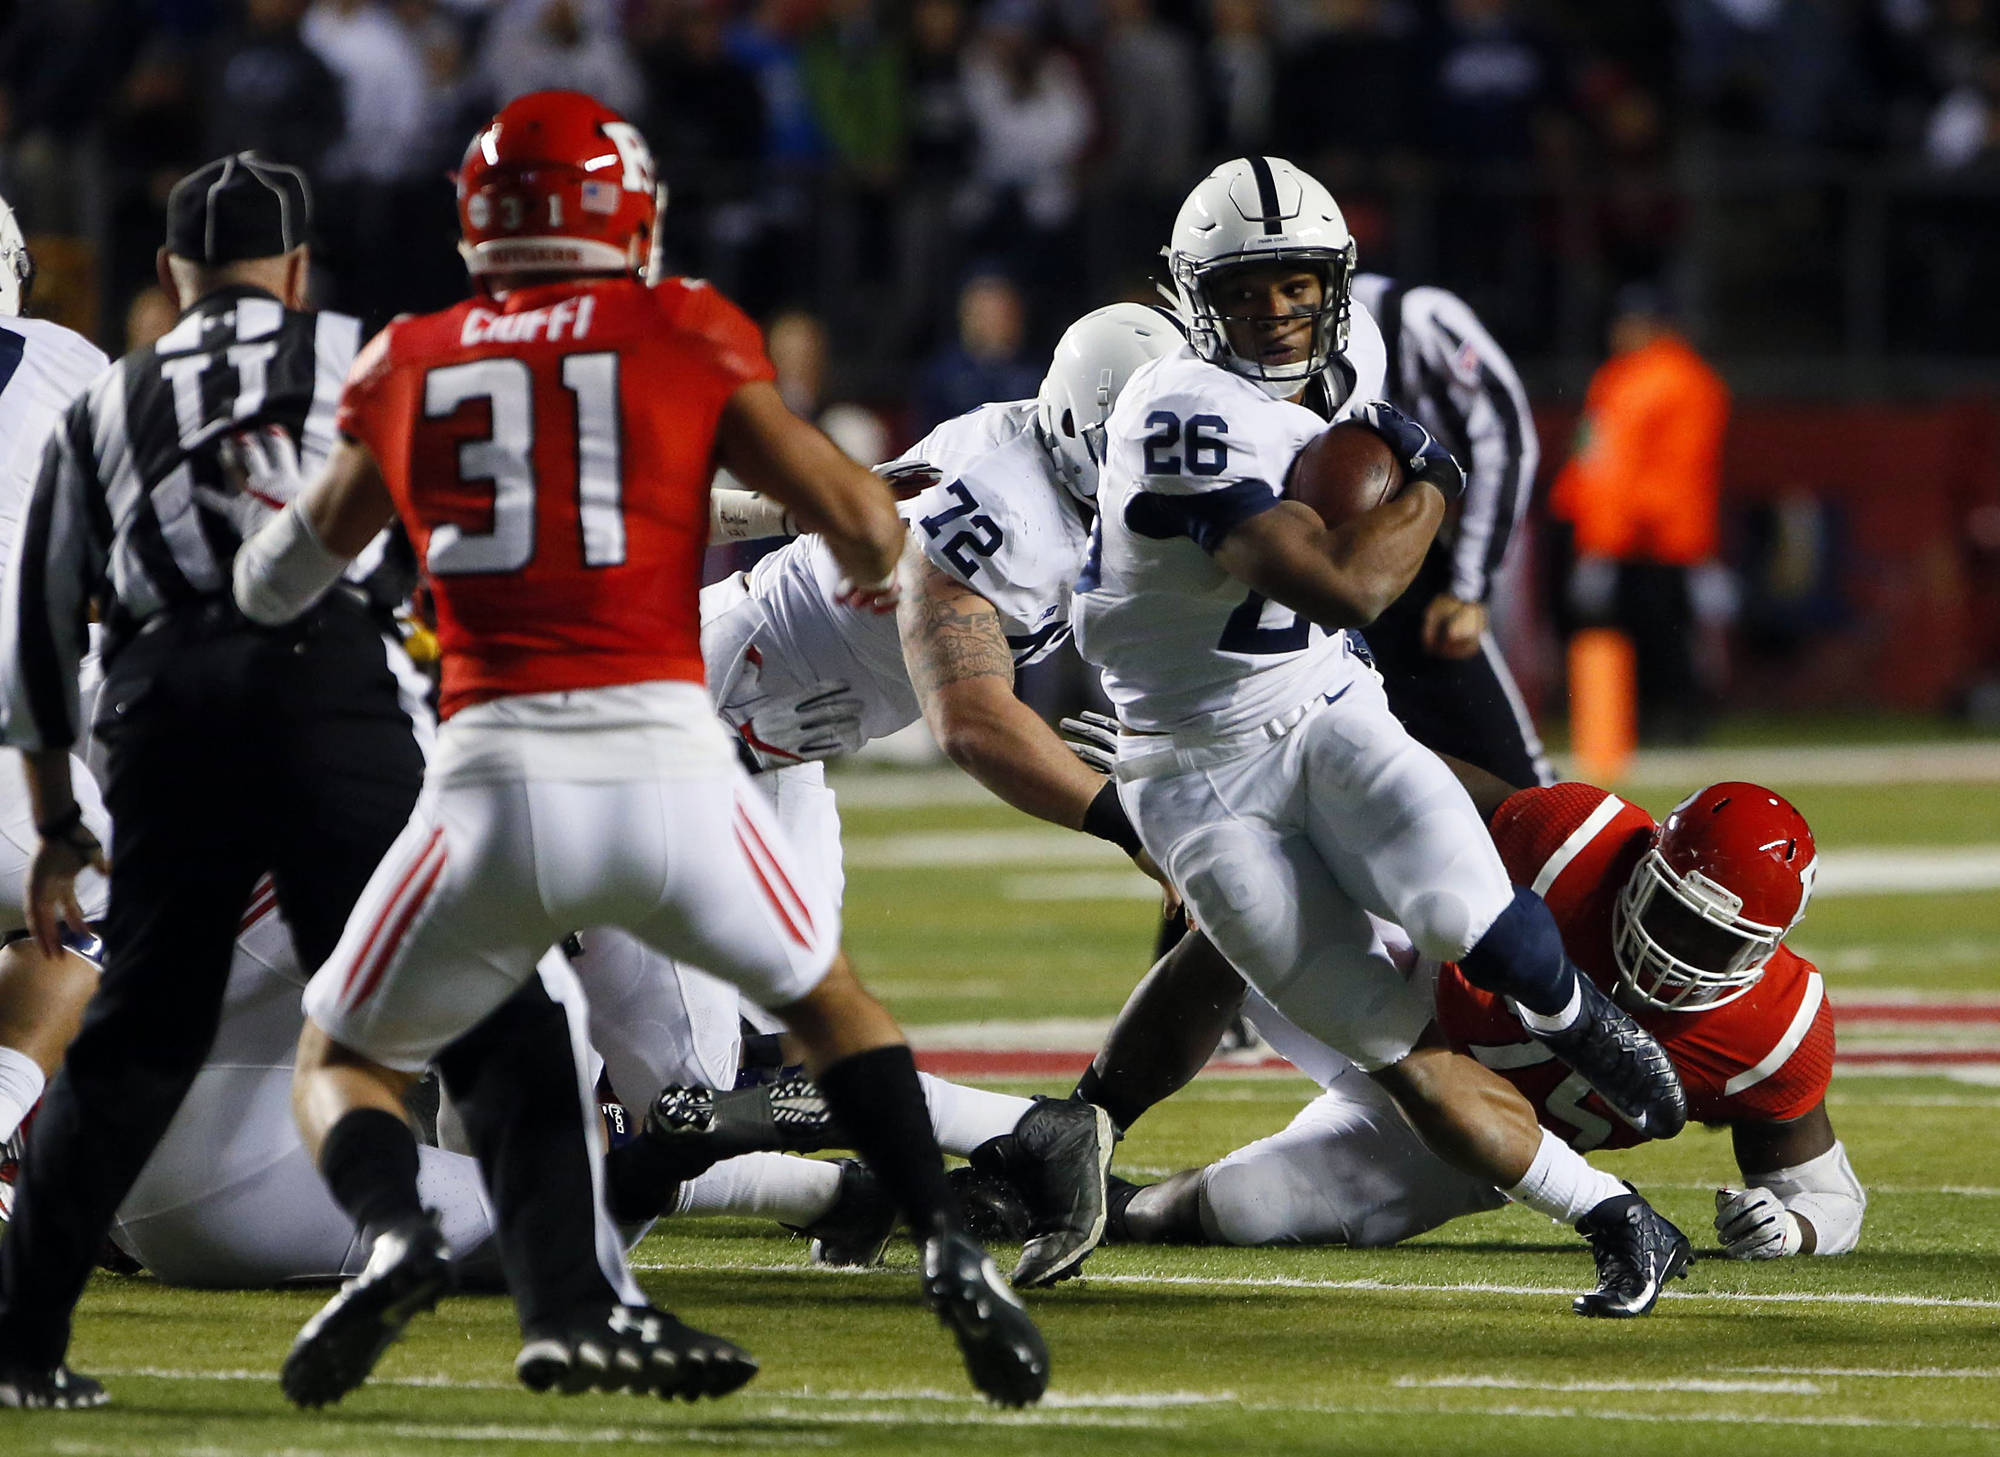 The Long Road for Penn State to get Back to the Top